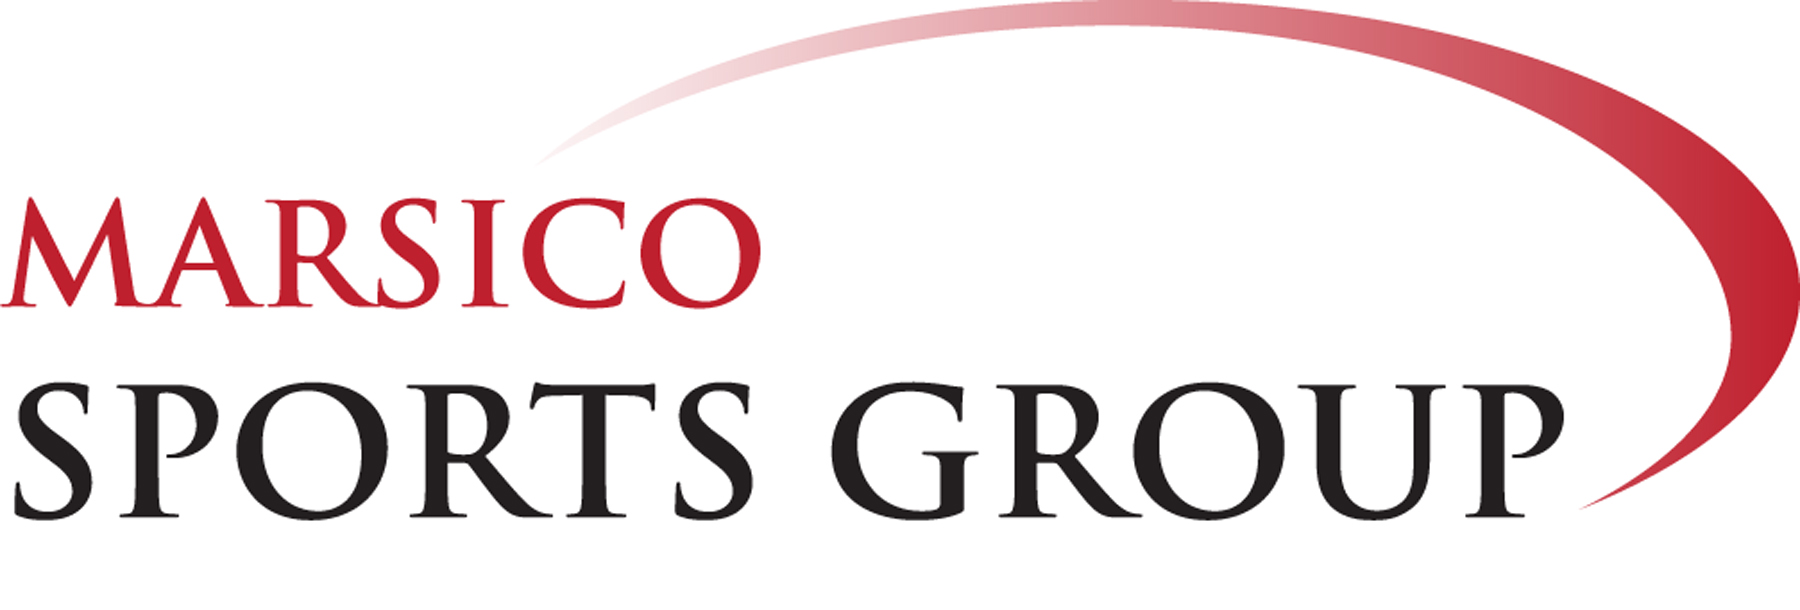 Marsico Sports Group.jpg